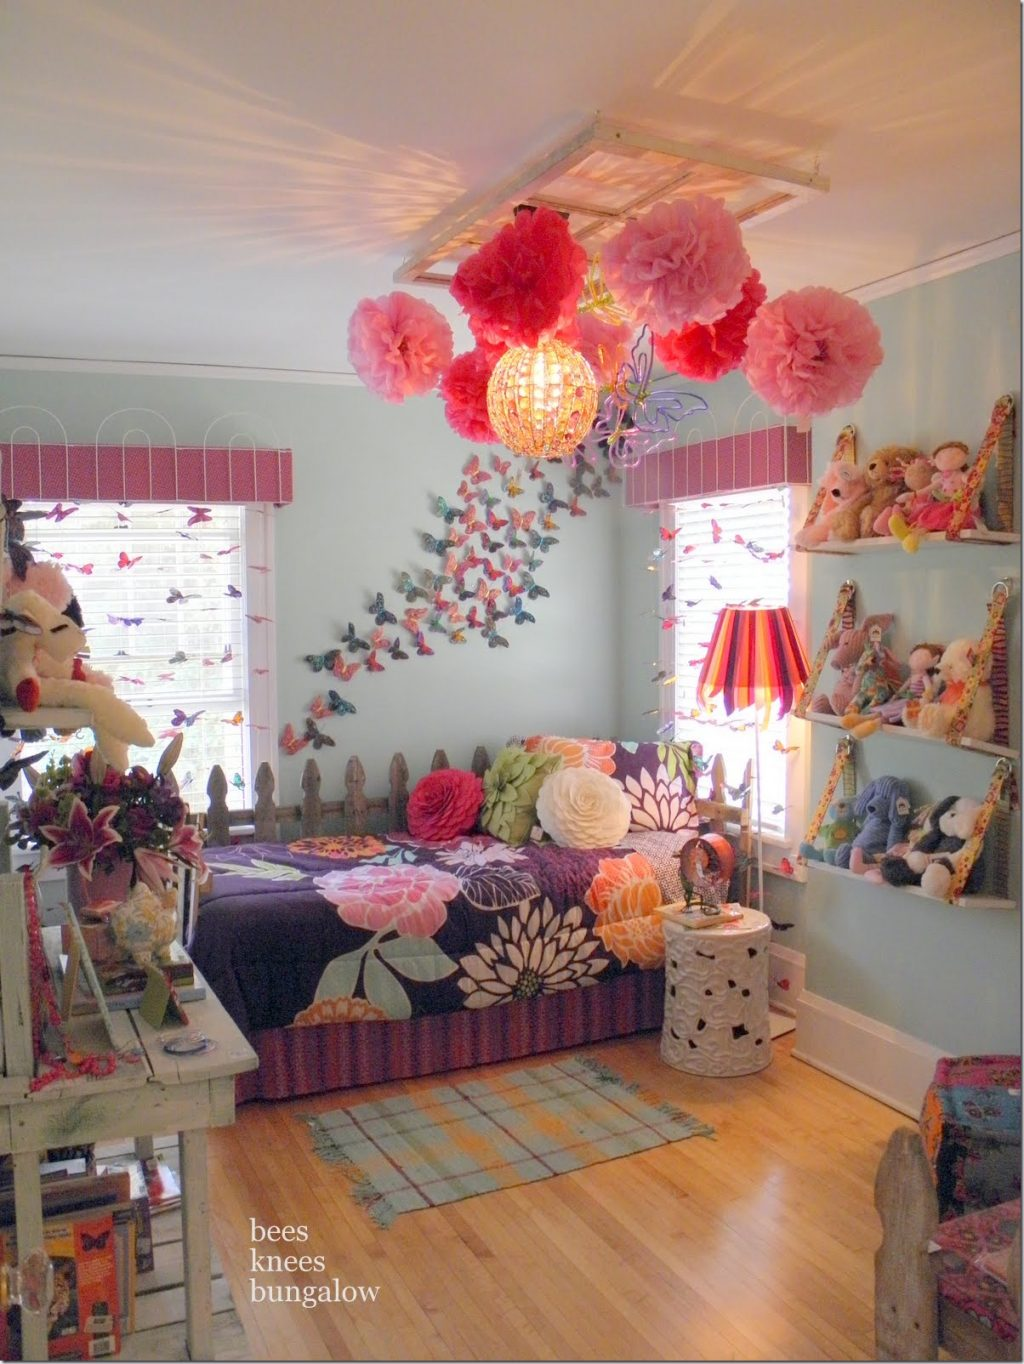 5 girls bedroom sets ideas for 2015 on Decorations For Girls Room  id=77751